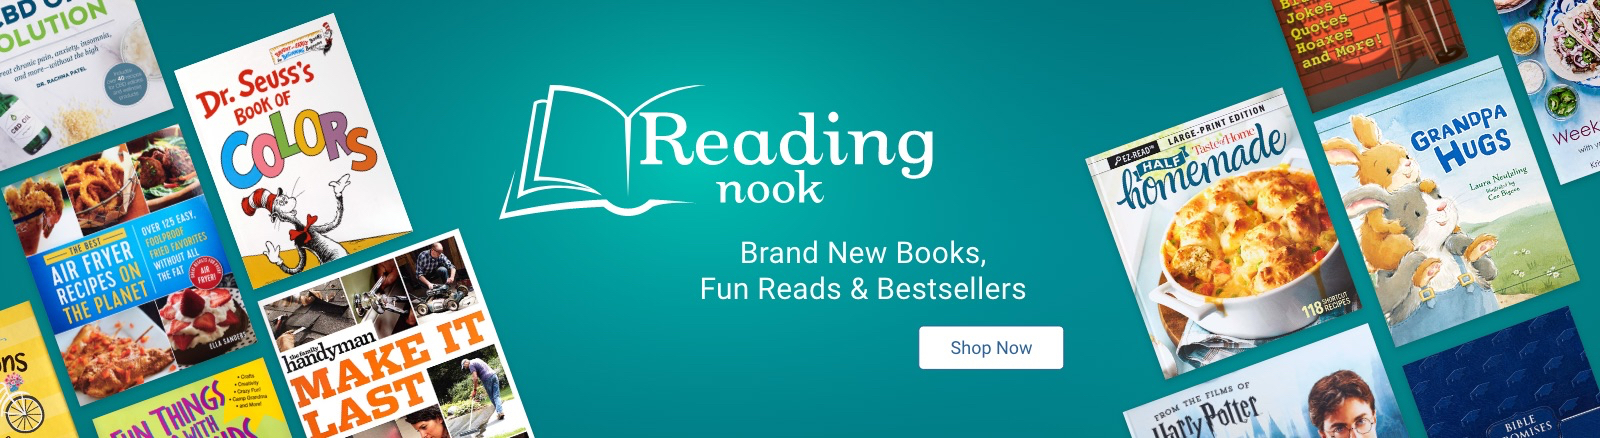 Reading Nook Brand New Books, Fun Reads & Bestsellers Shop Now